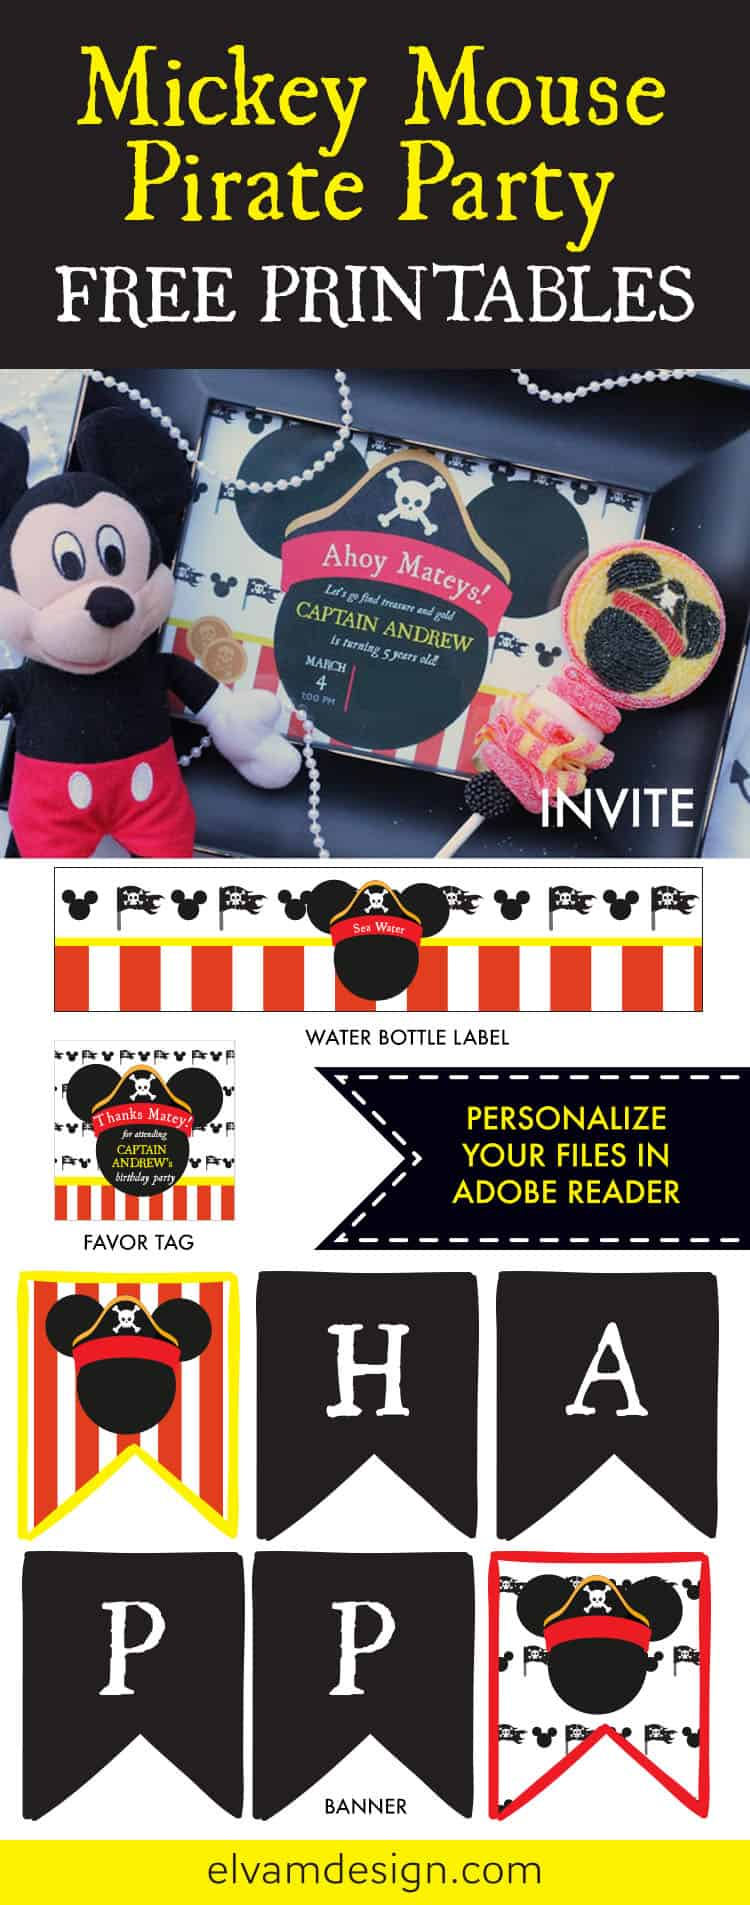 Free Mickey Mouse Pirate Party Printables from Elva M Design Studio. Download yours at elvamdesign.com.